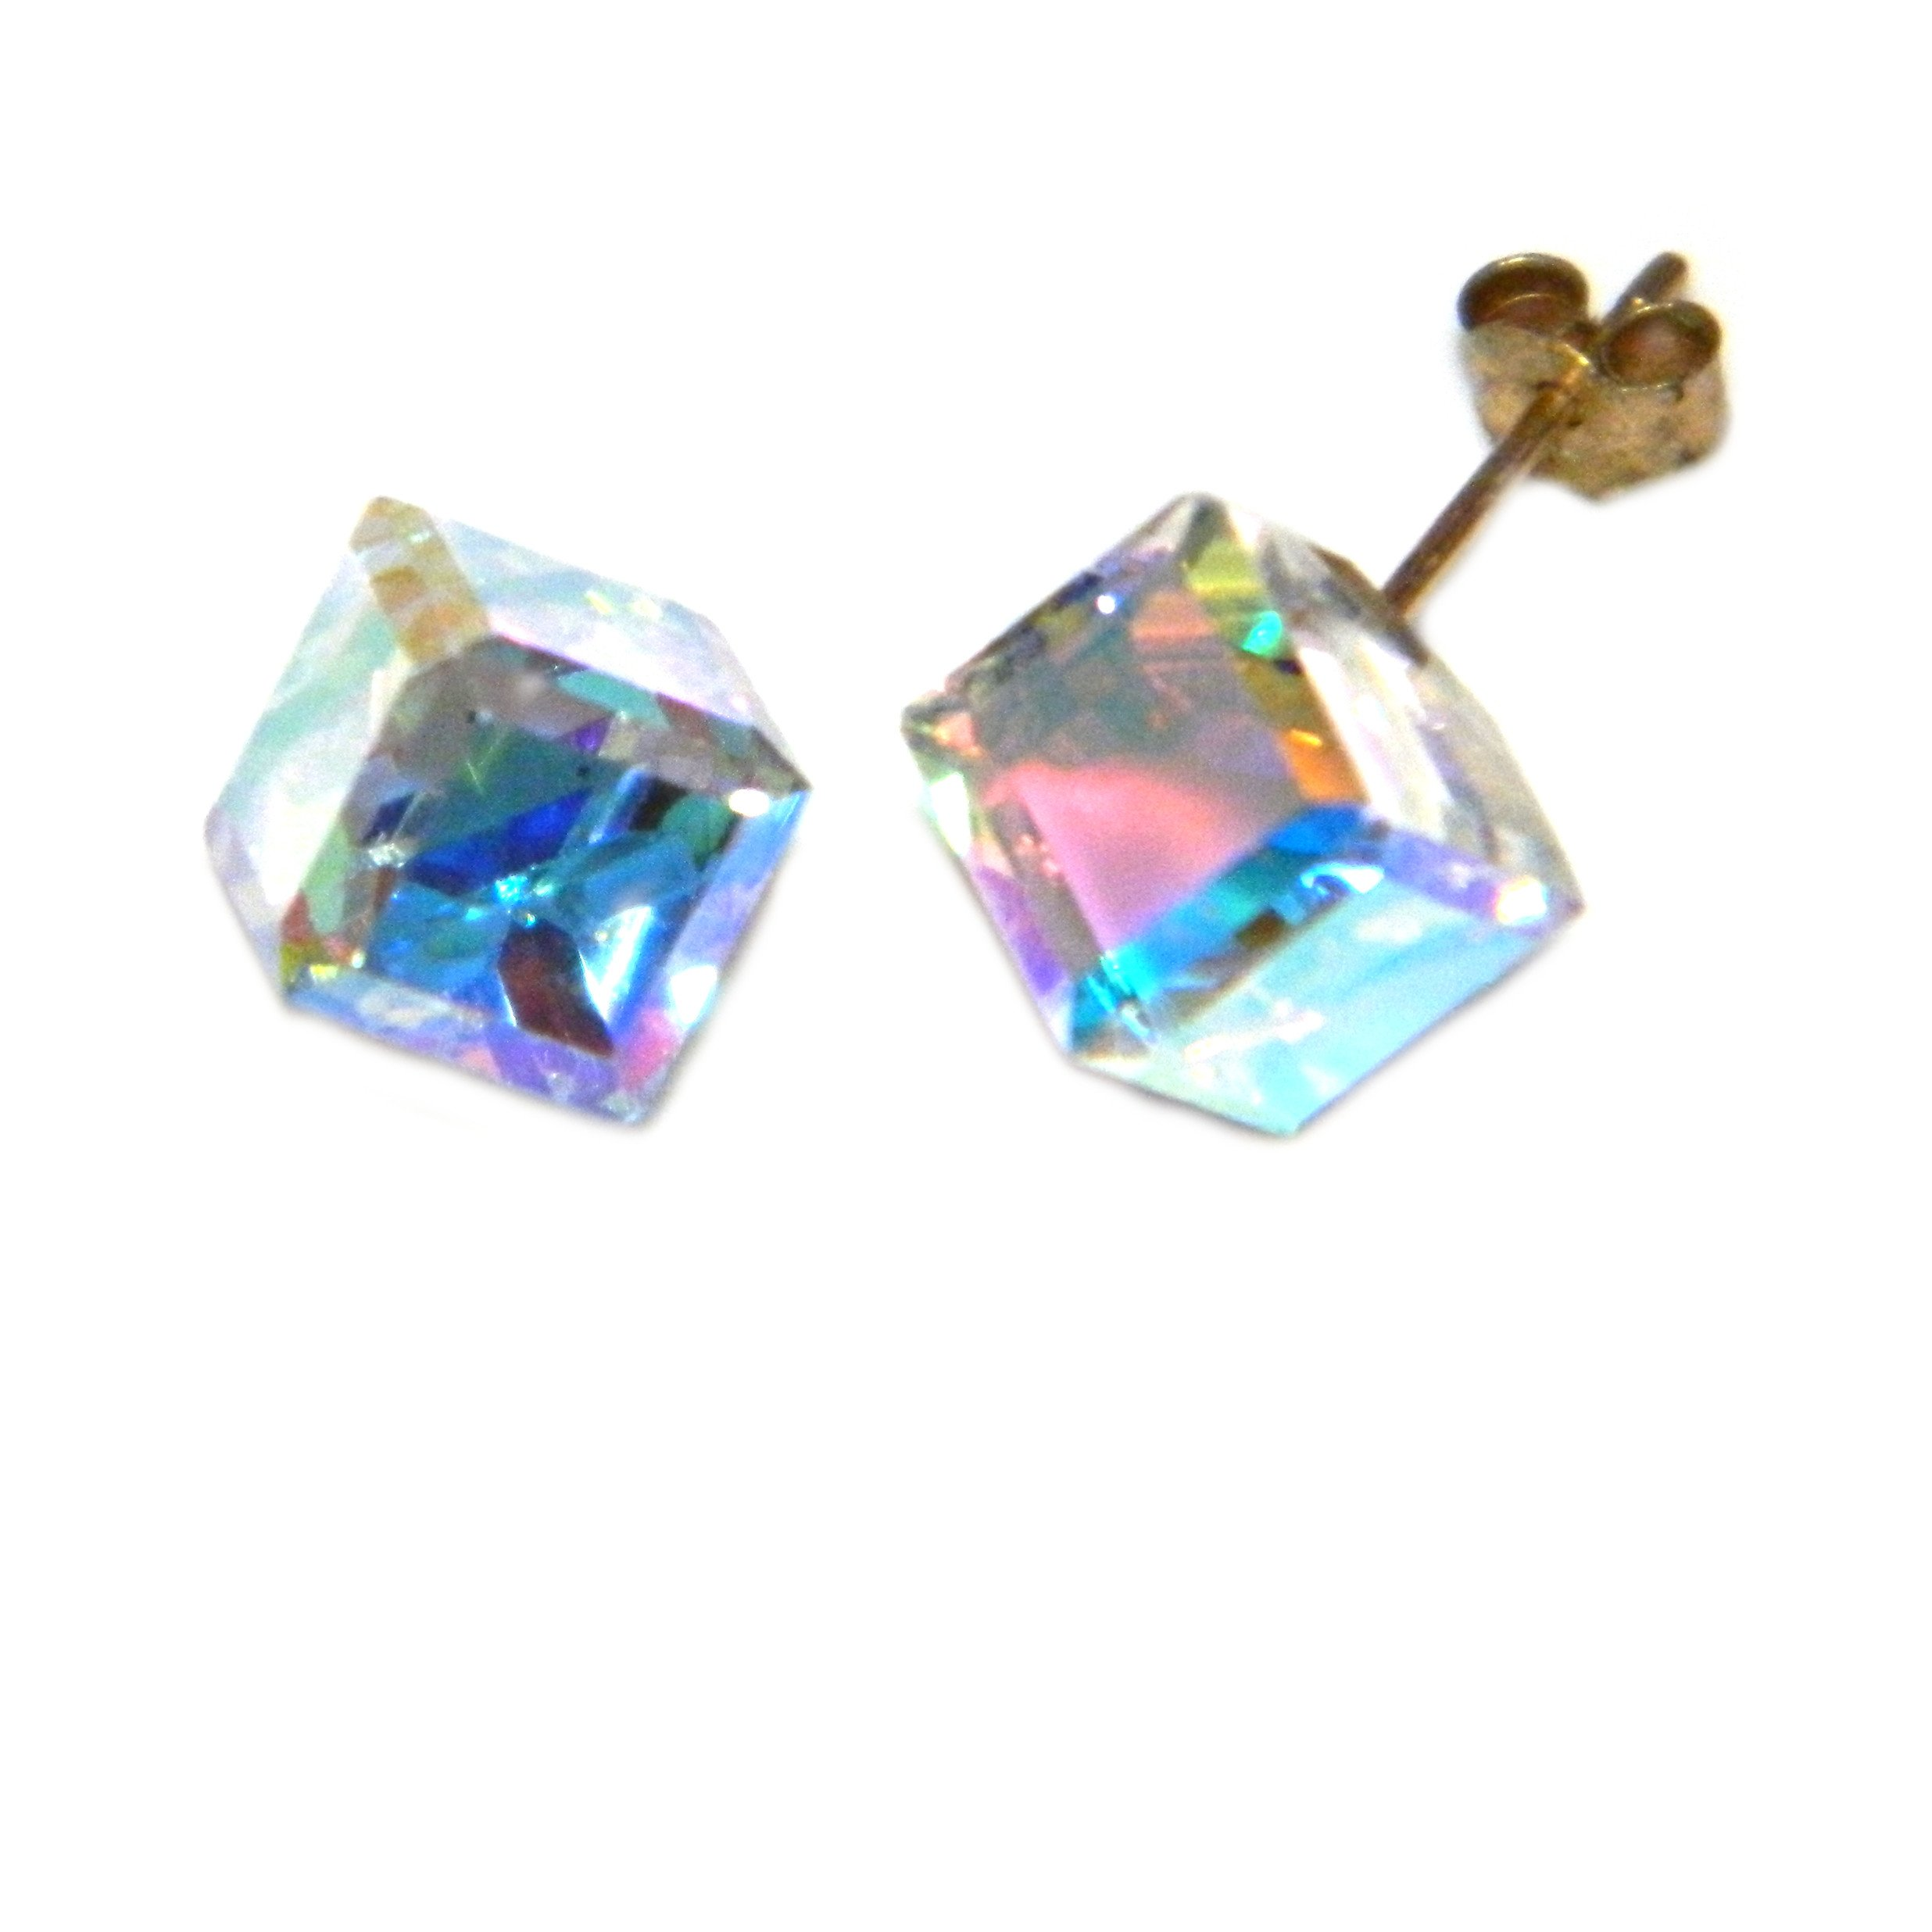 9ct gold crystal cube earrings